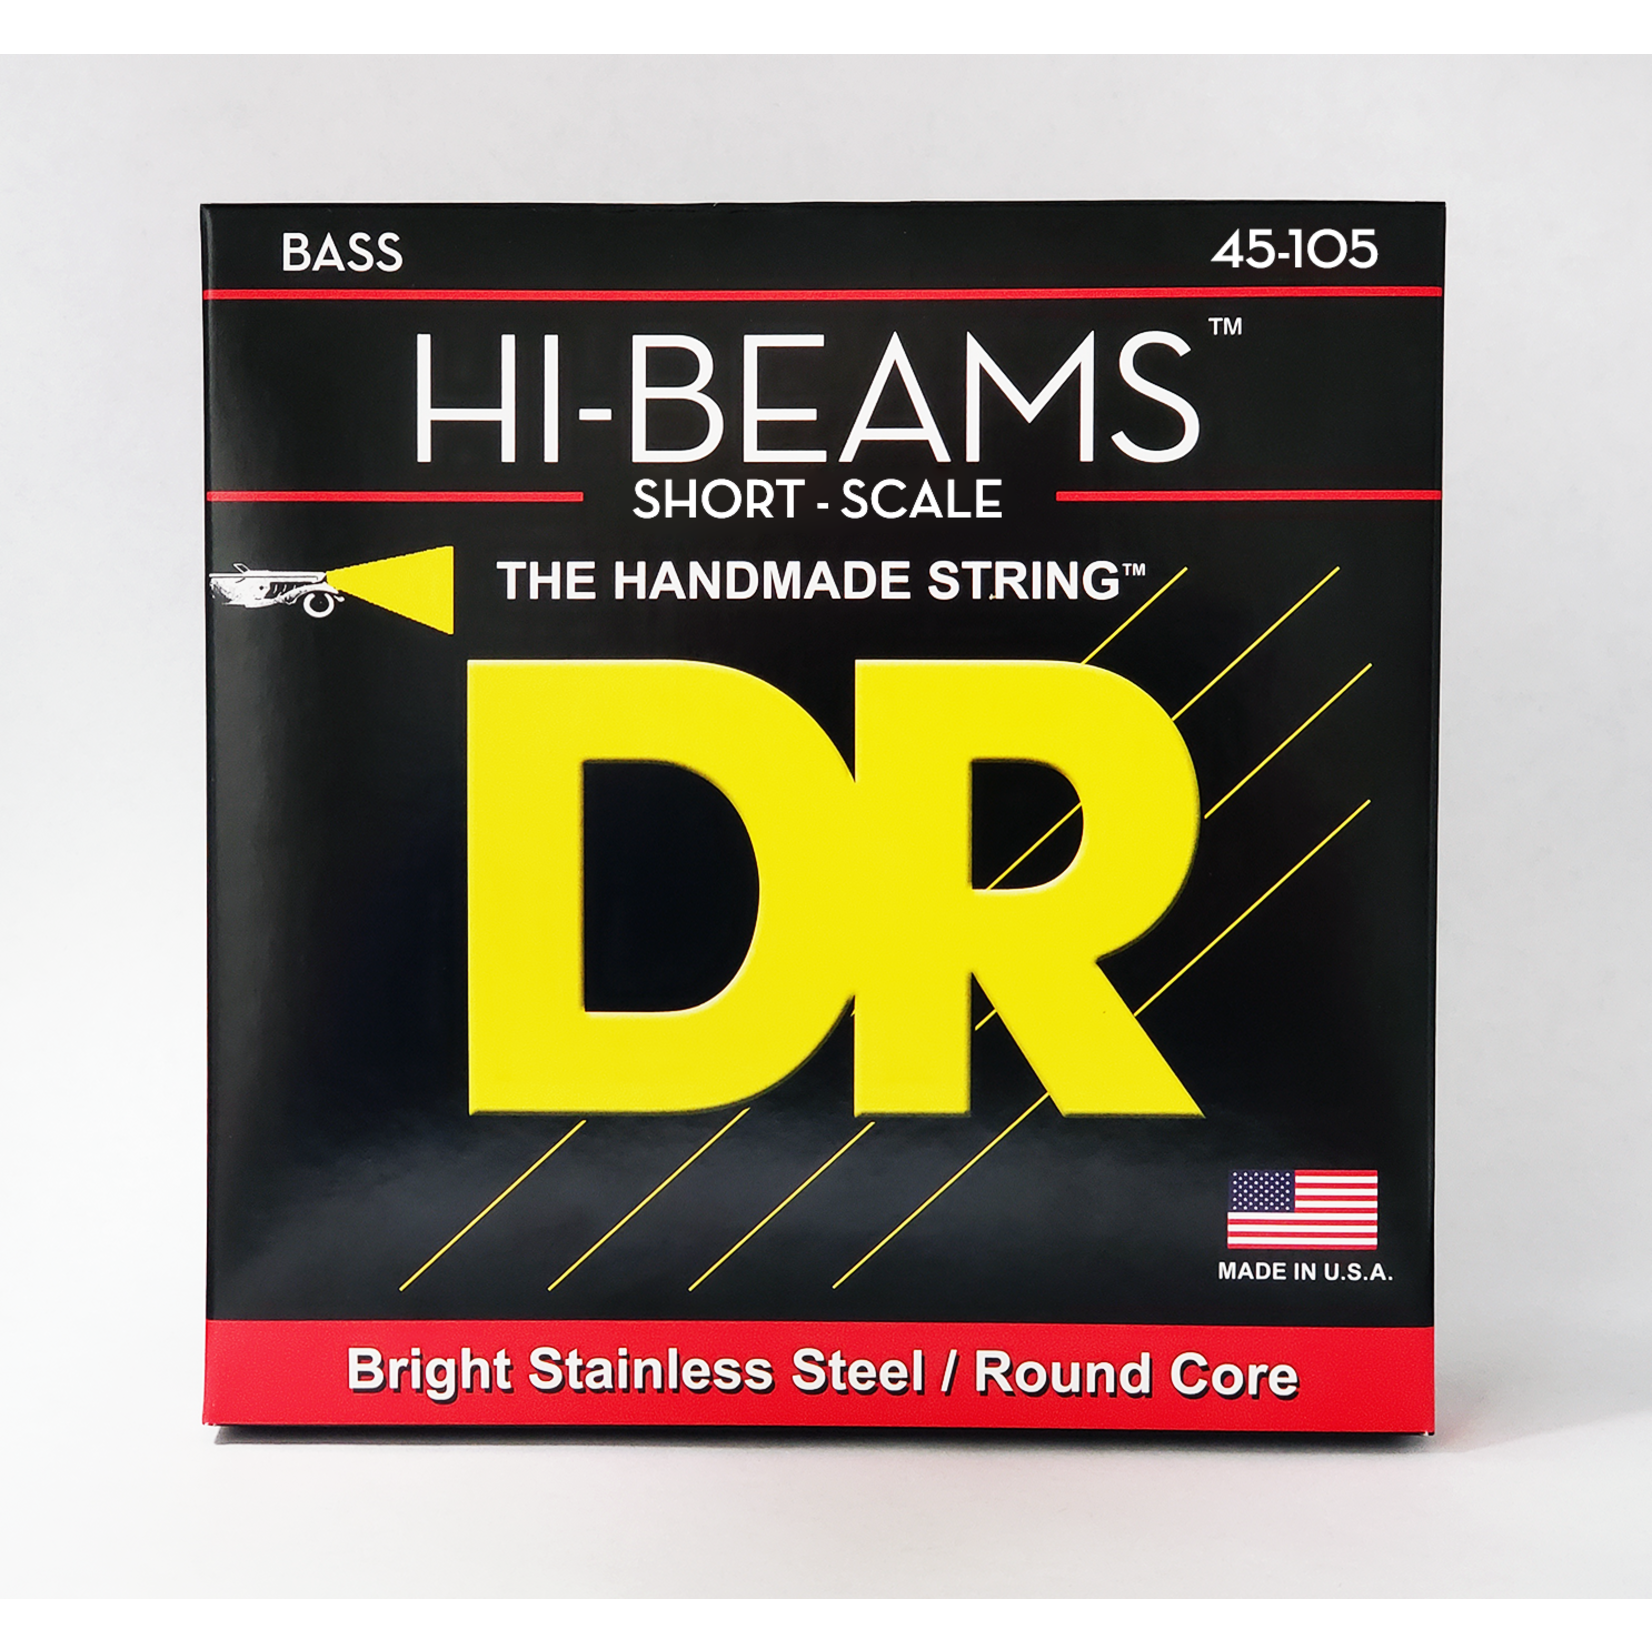 DR Strings DR HI-BEAMS Bright Stainless Steel/Round Core SHORT SCALE 45-105 Bass Strings, 4-String Set, SMR-45